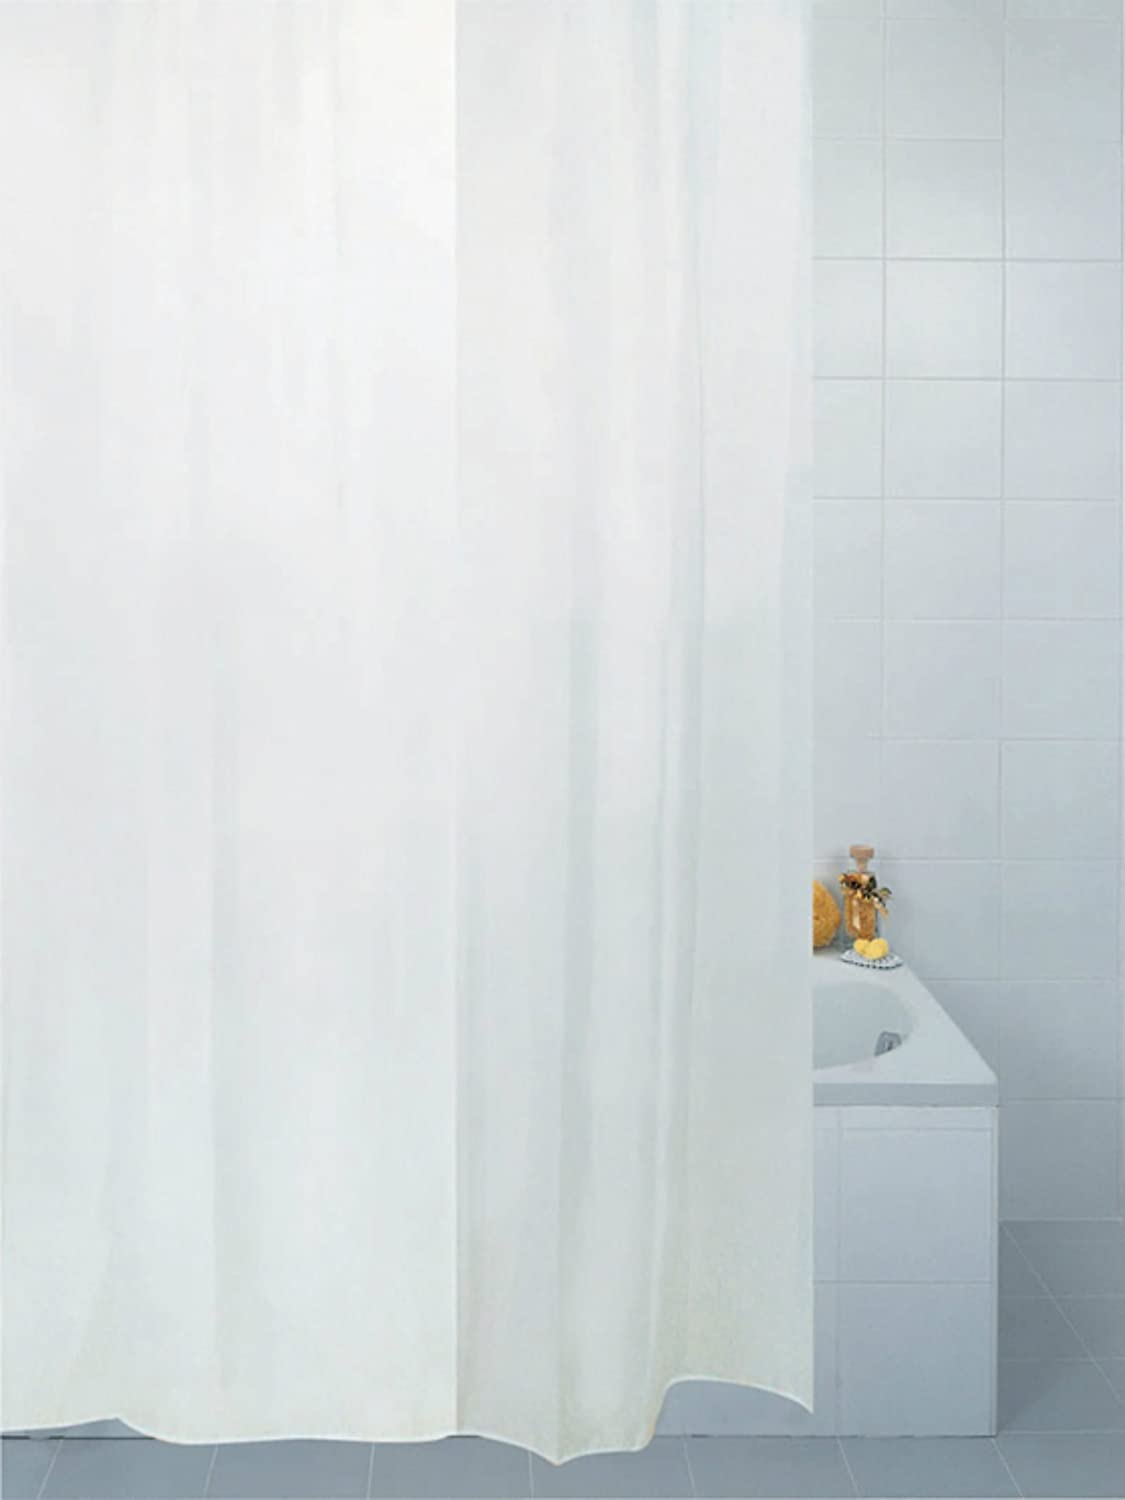 Plain White Fabric Shower Curtain 180 x 210 cm: Amazon.co.uk ...